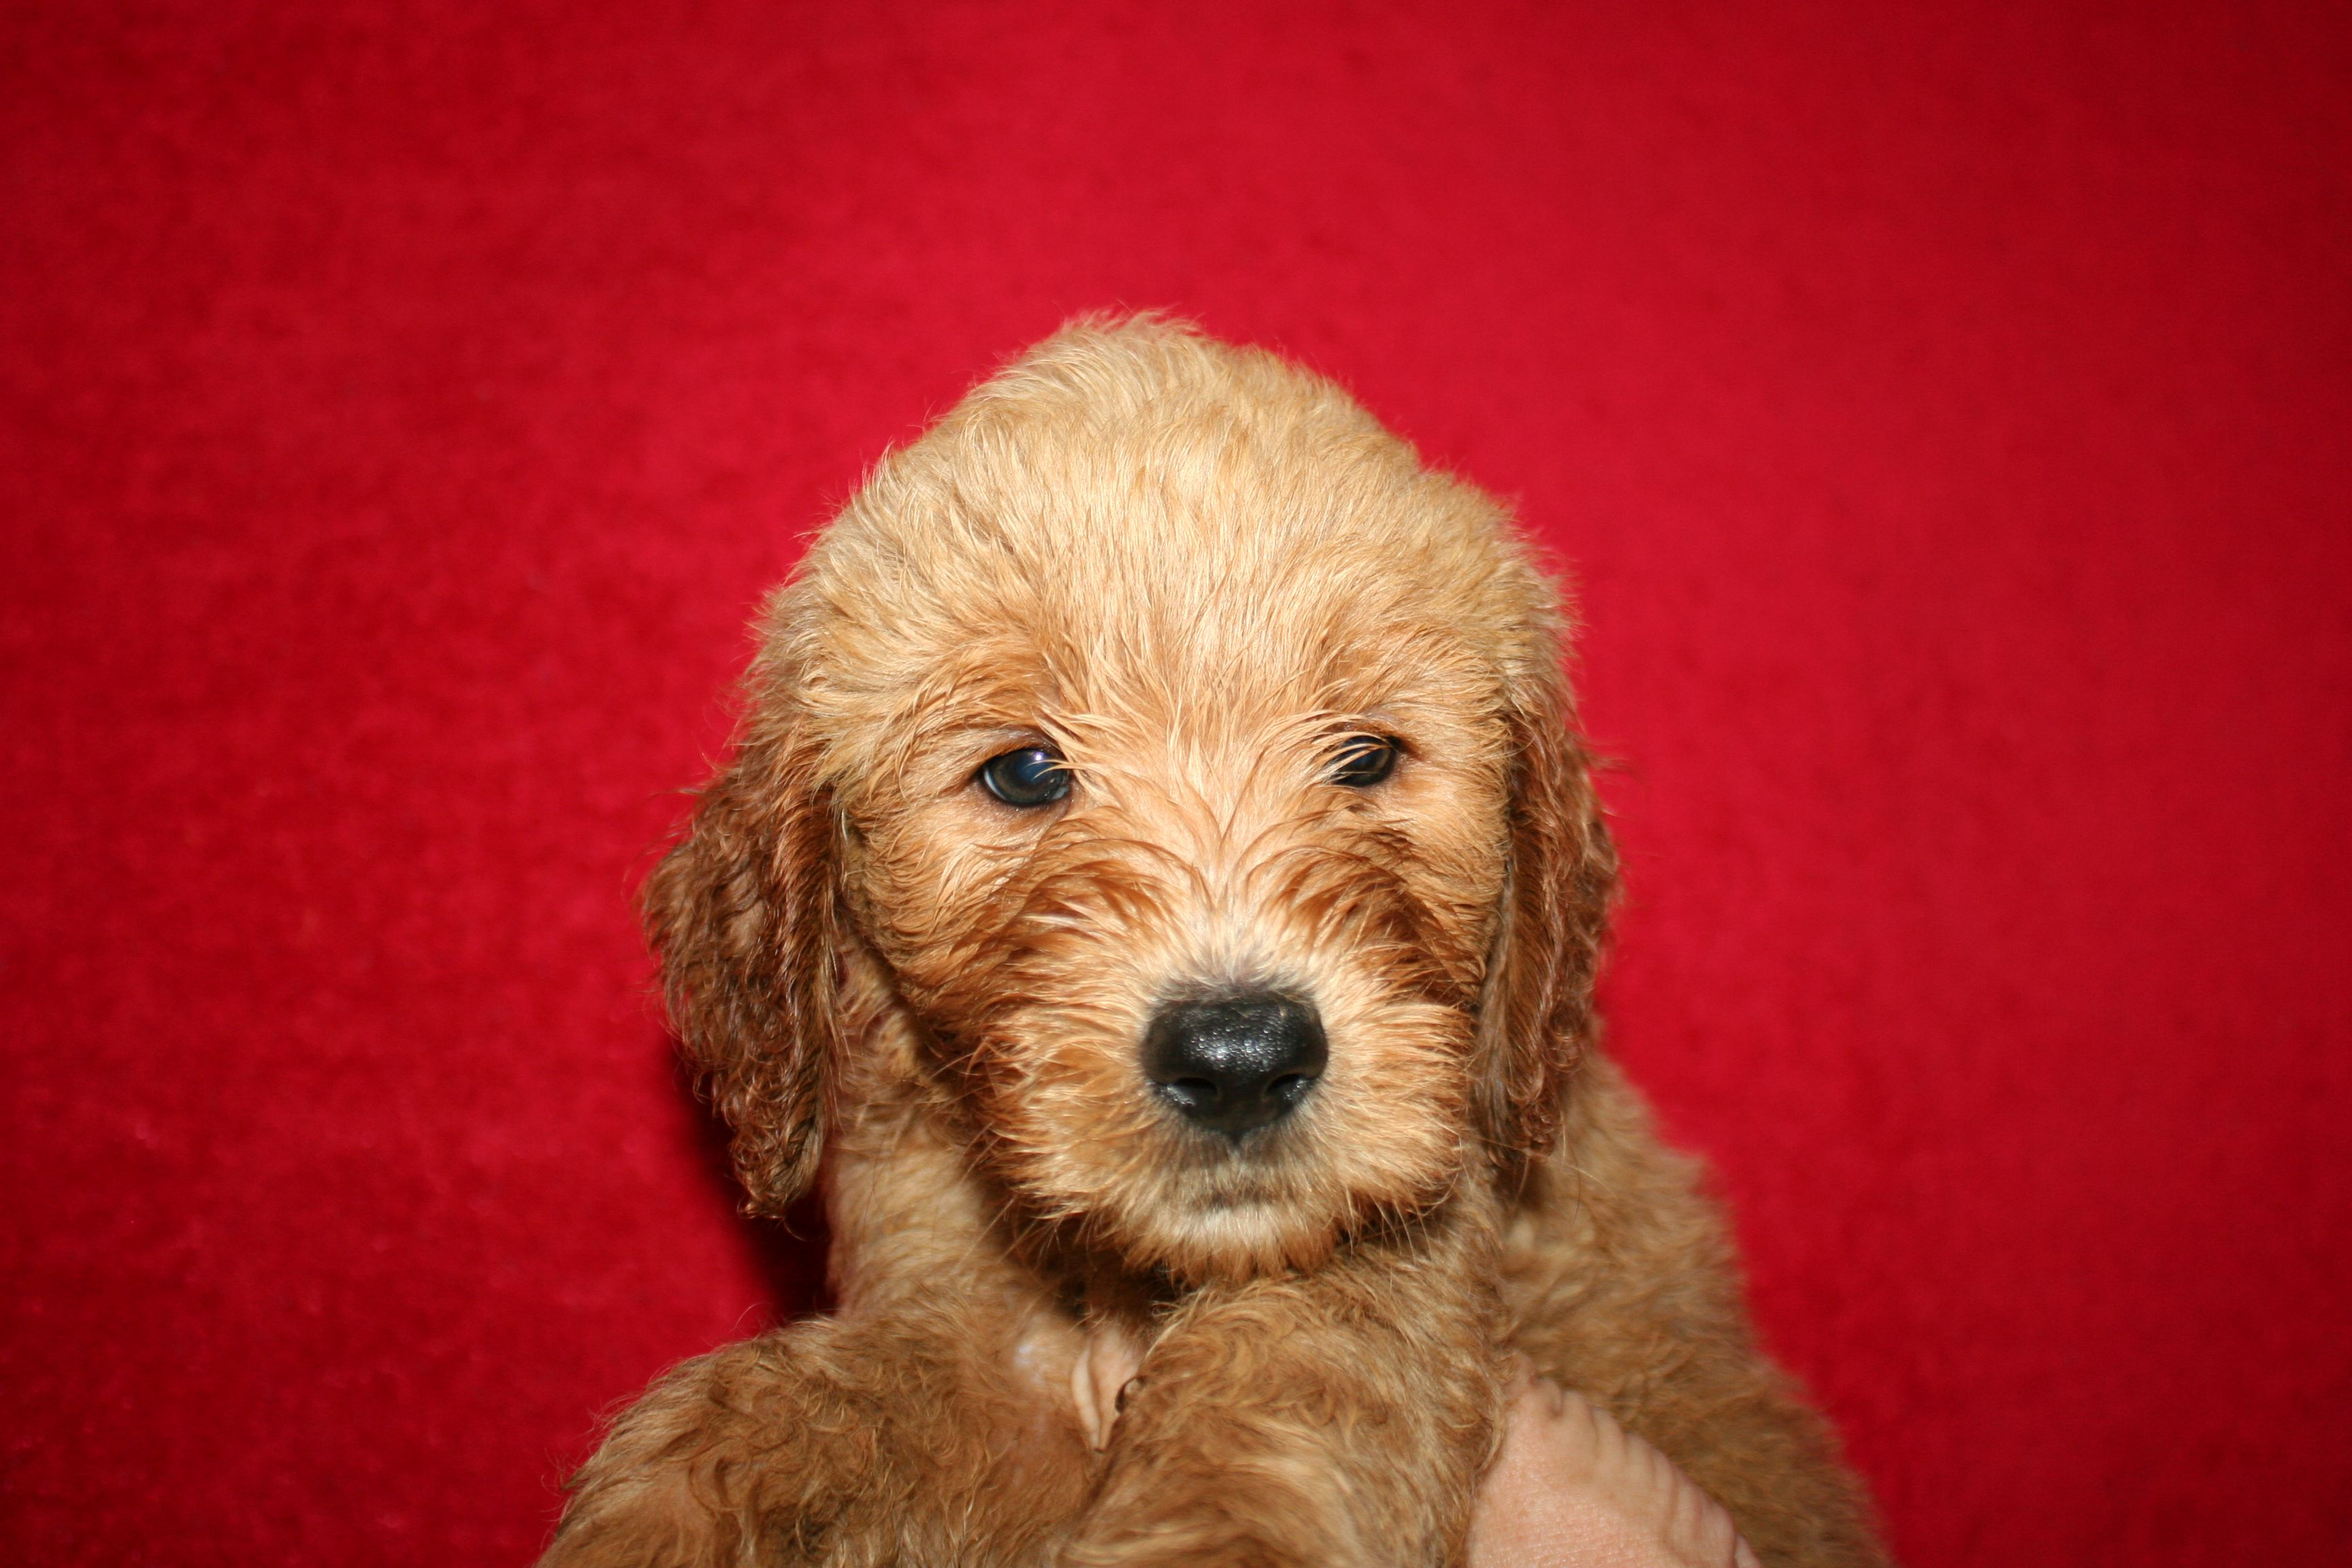 6 Week Old Medium F1b Gold Apricot Goldendoodle Puppy Fresh From